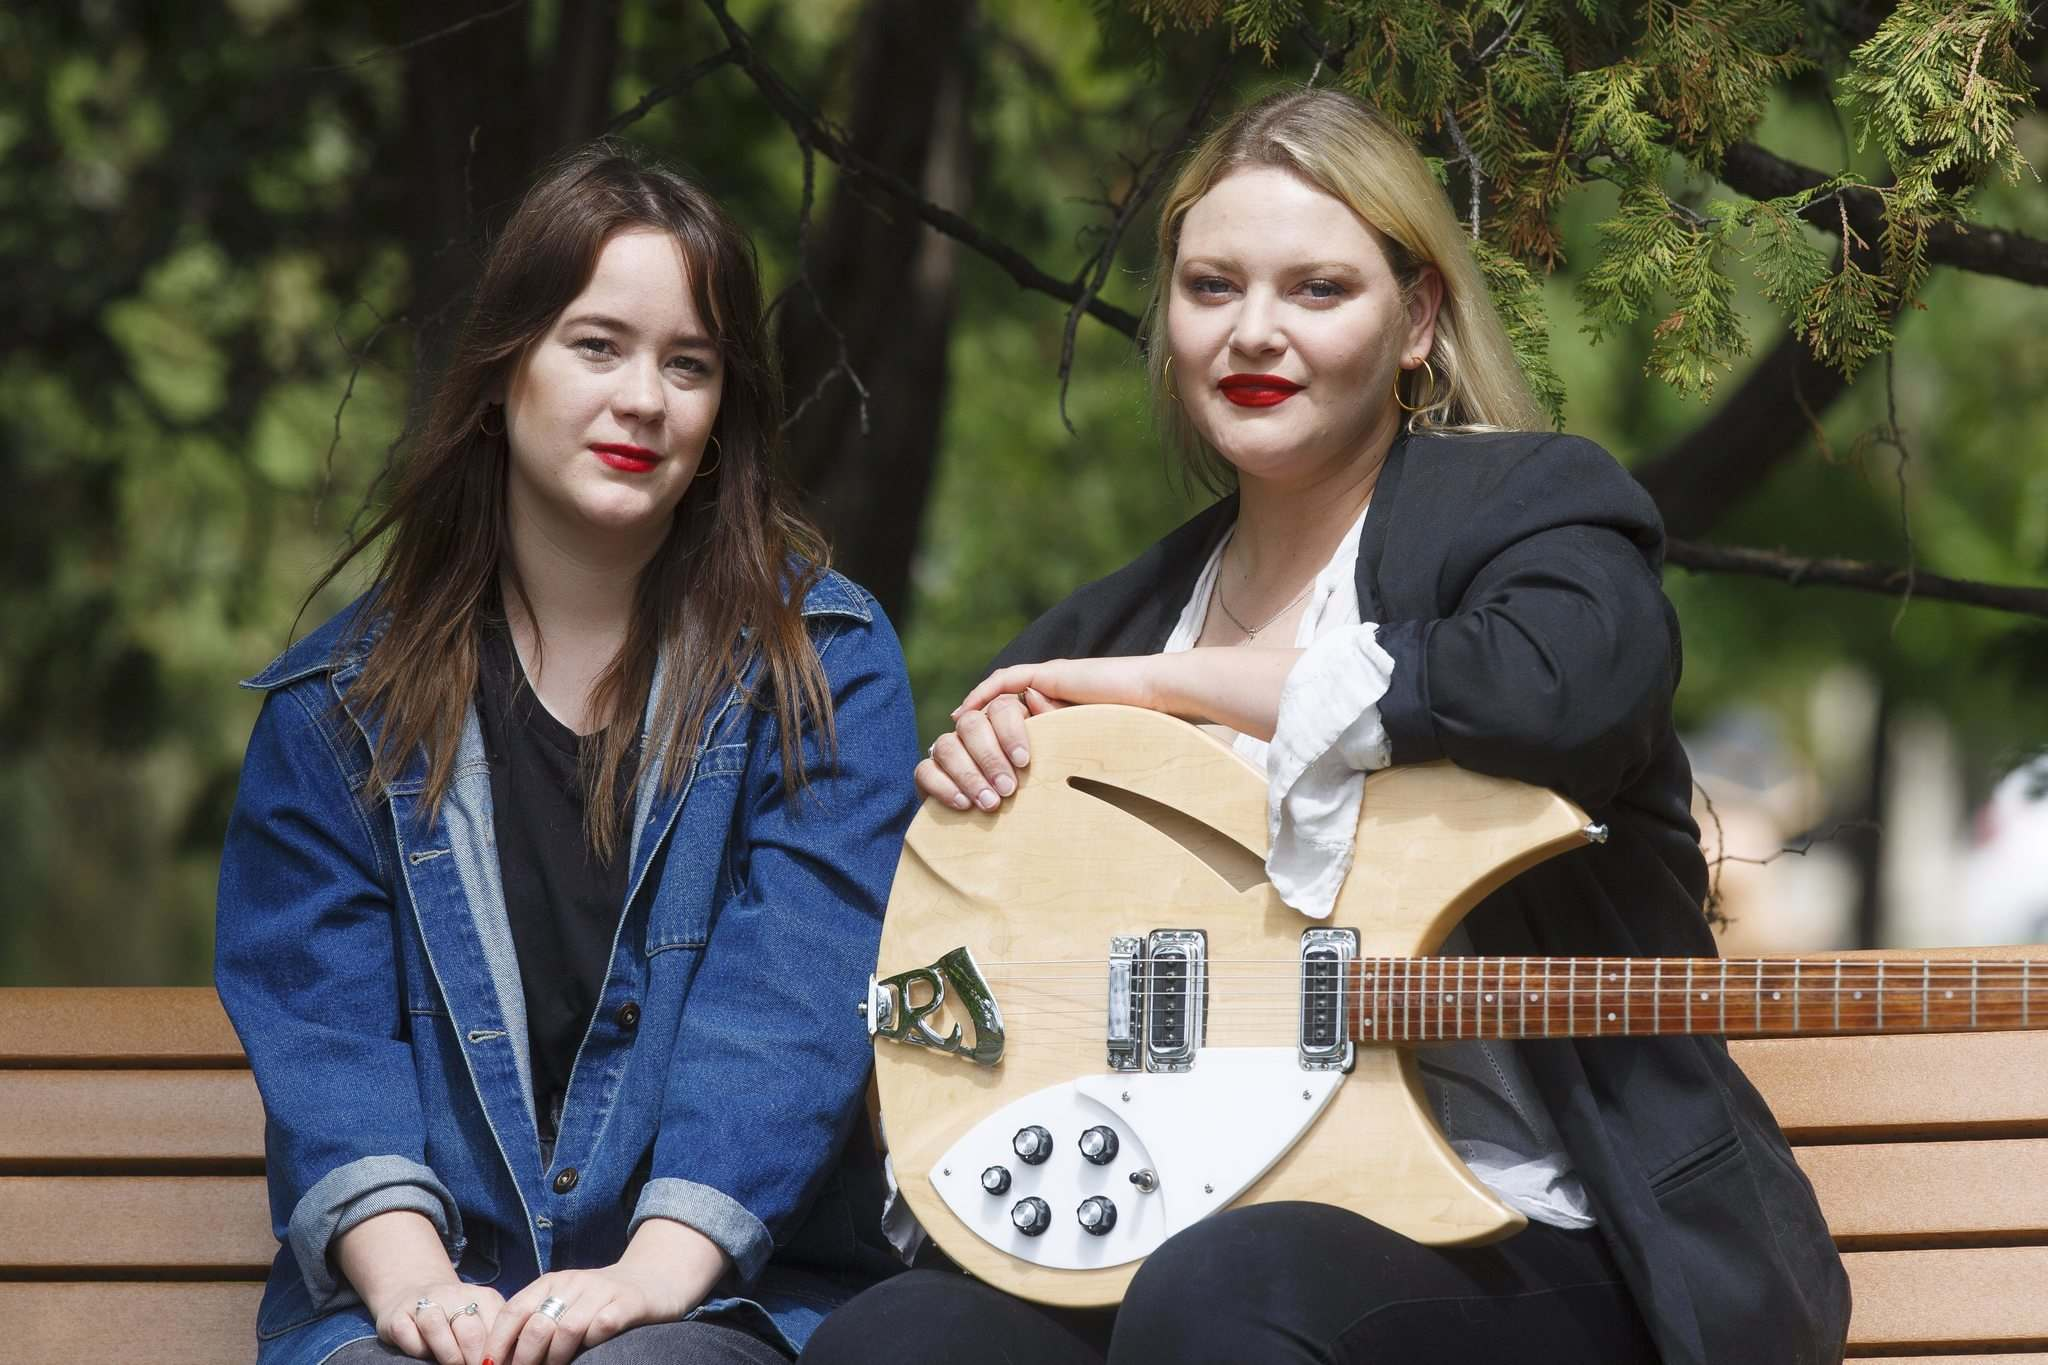 MIKE DEAL / WINNIPEG FREE PRESS</p><p>Jodi Dunlop (left) and Stefanie Johnson of Mise en Scene have created a video that draws on video from fans all over the world, and it also updates on them and how their album and tour was disrupted by the pandemic.</p>